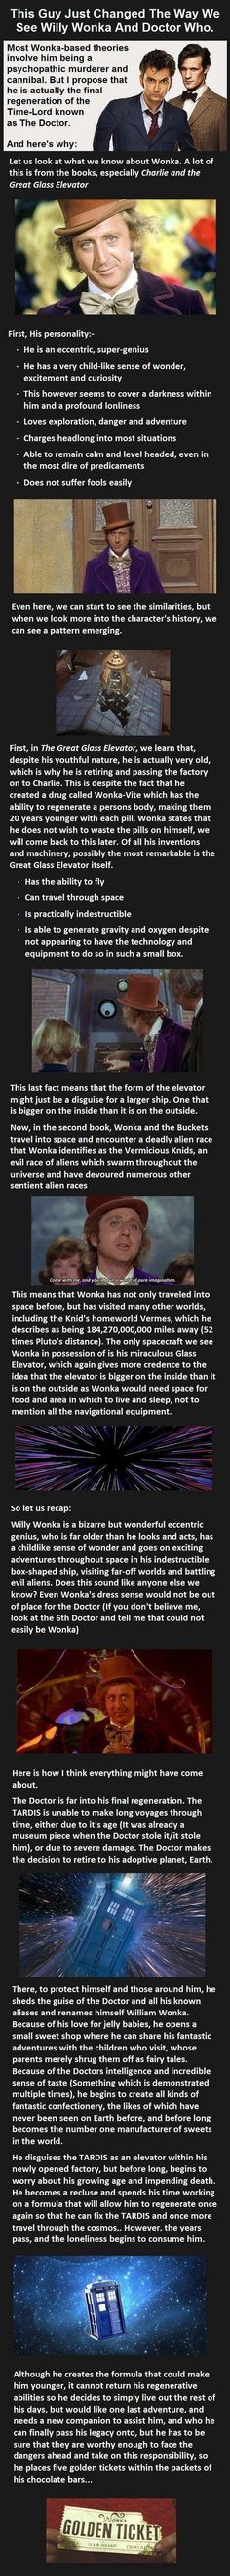 Delilah ✩ a theory of how willy wonka might be a timelord or the doctor himself!